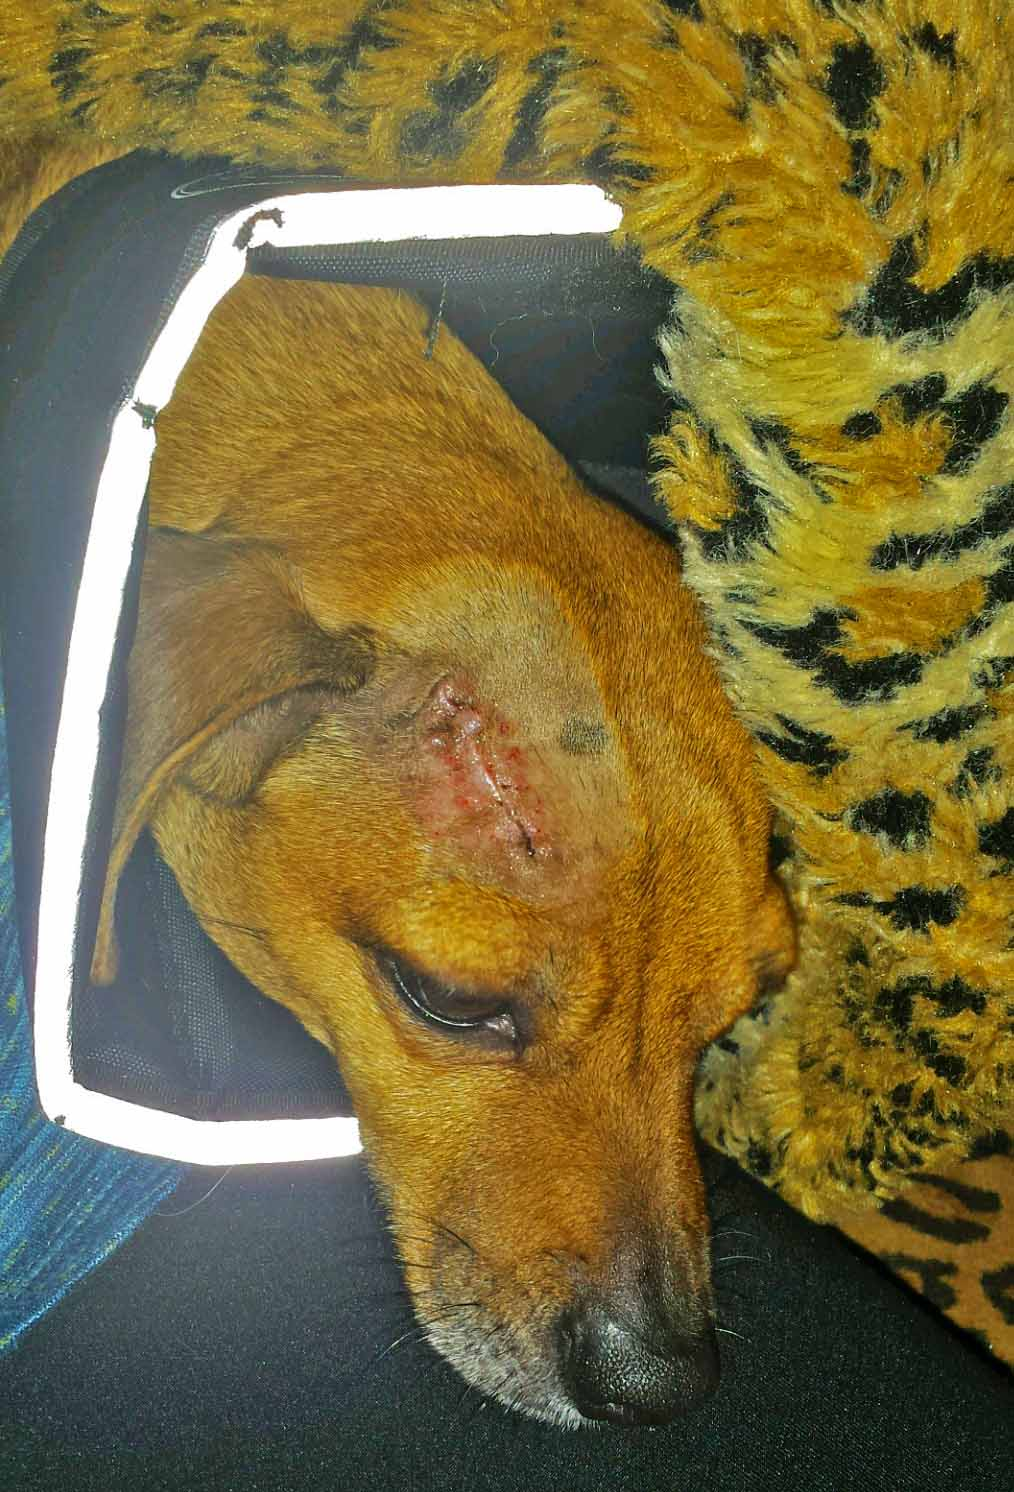 OWWW!!!! Poor baby! Brain zipper healing, but hard to look at. Photo: (c) Barb Ayers, DogDiary.org